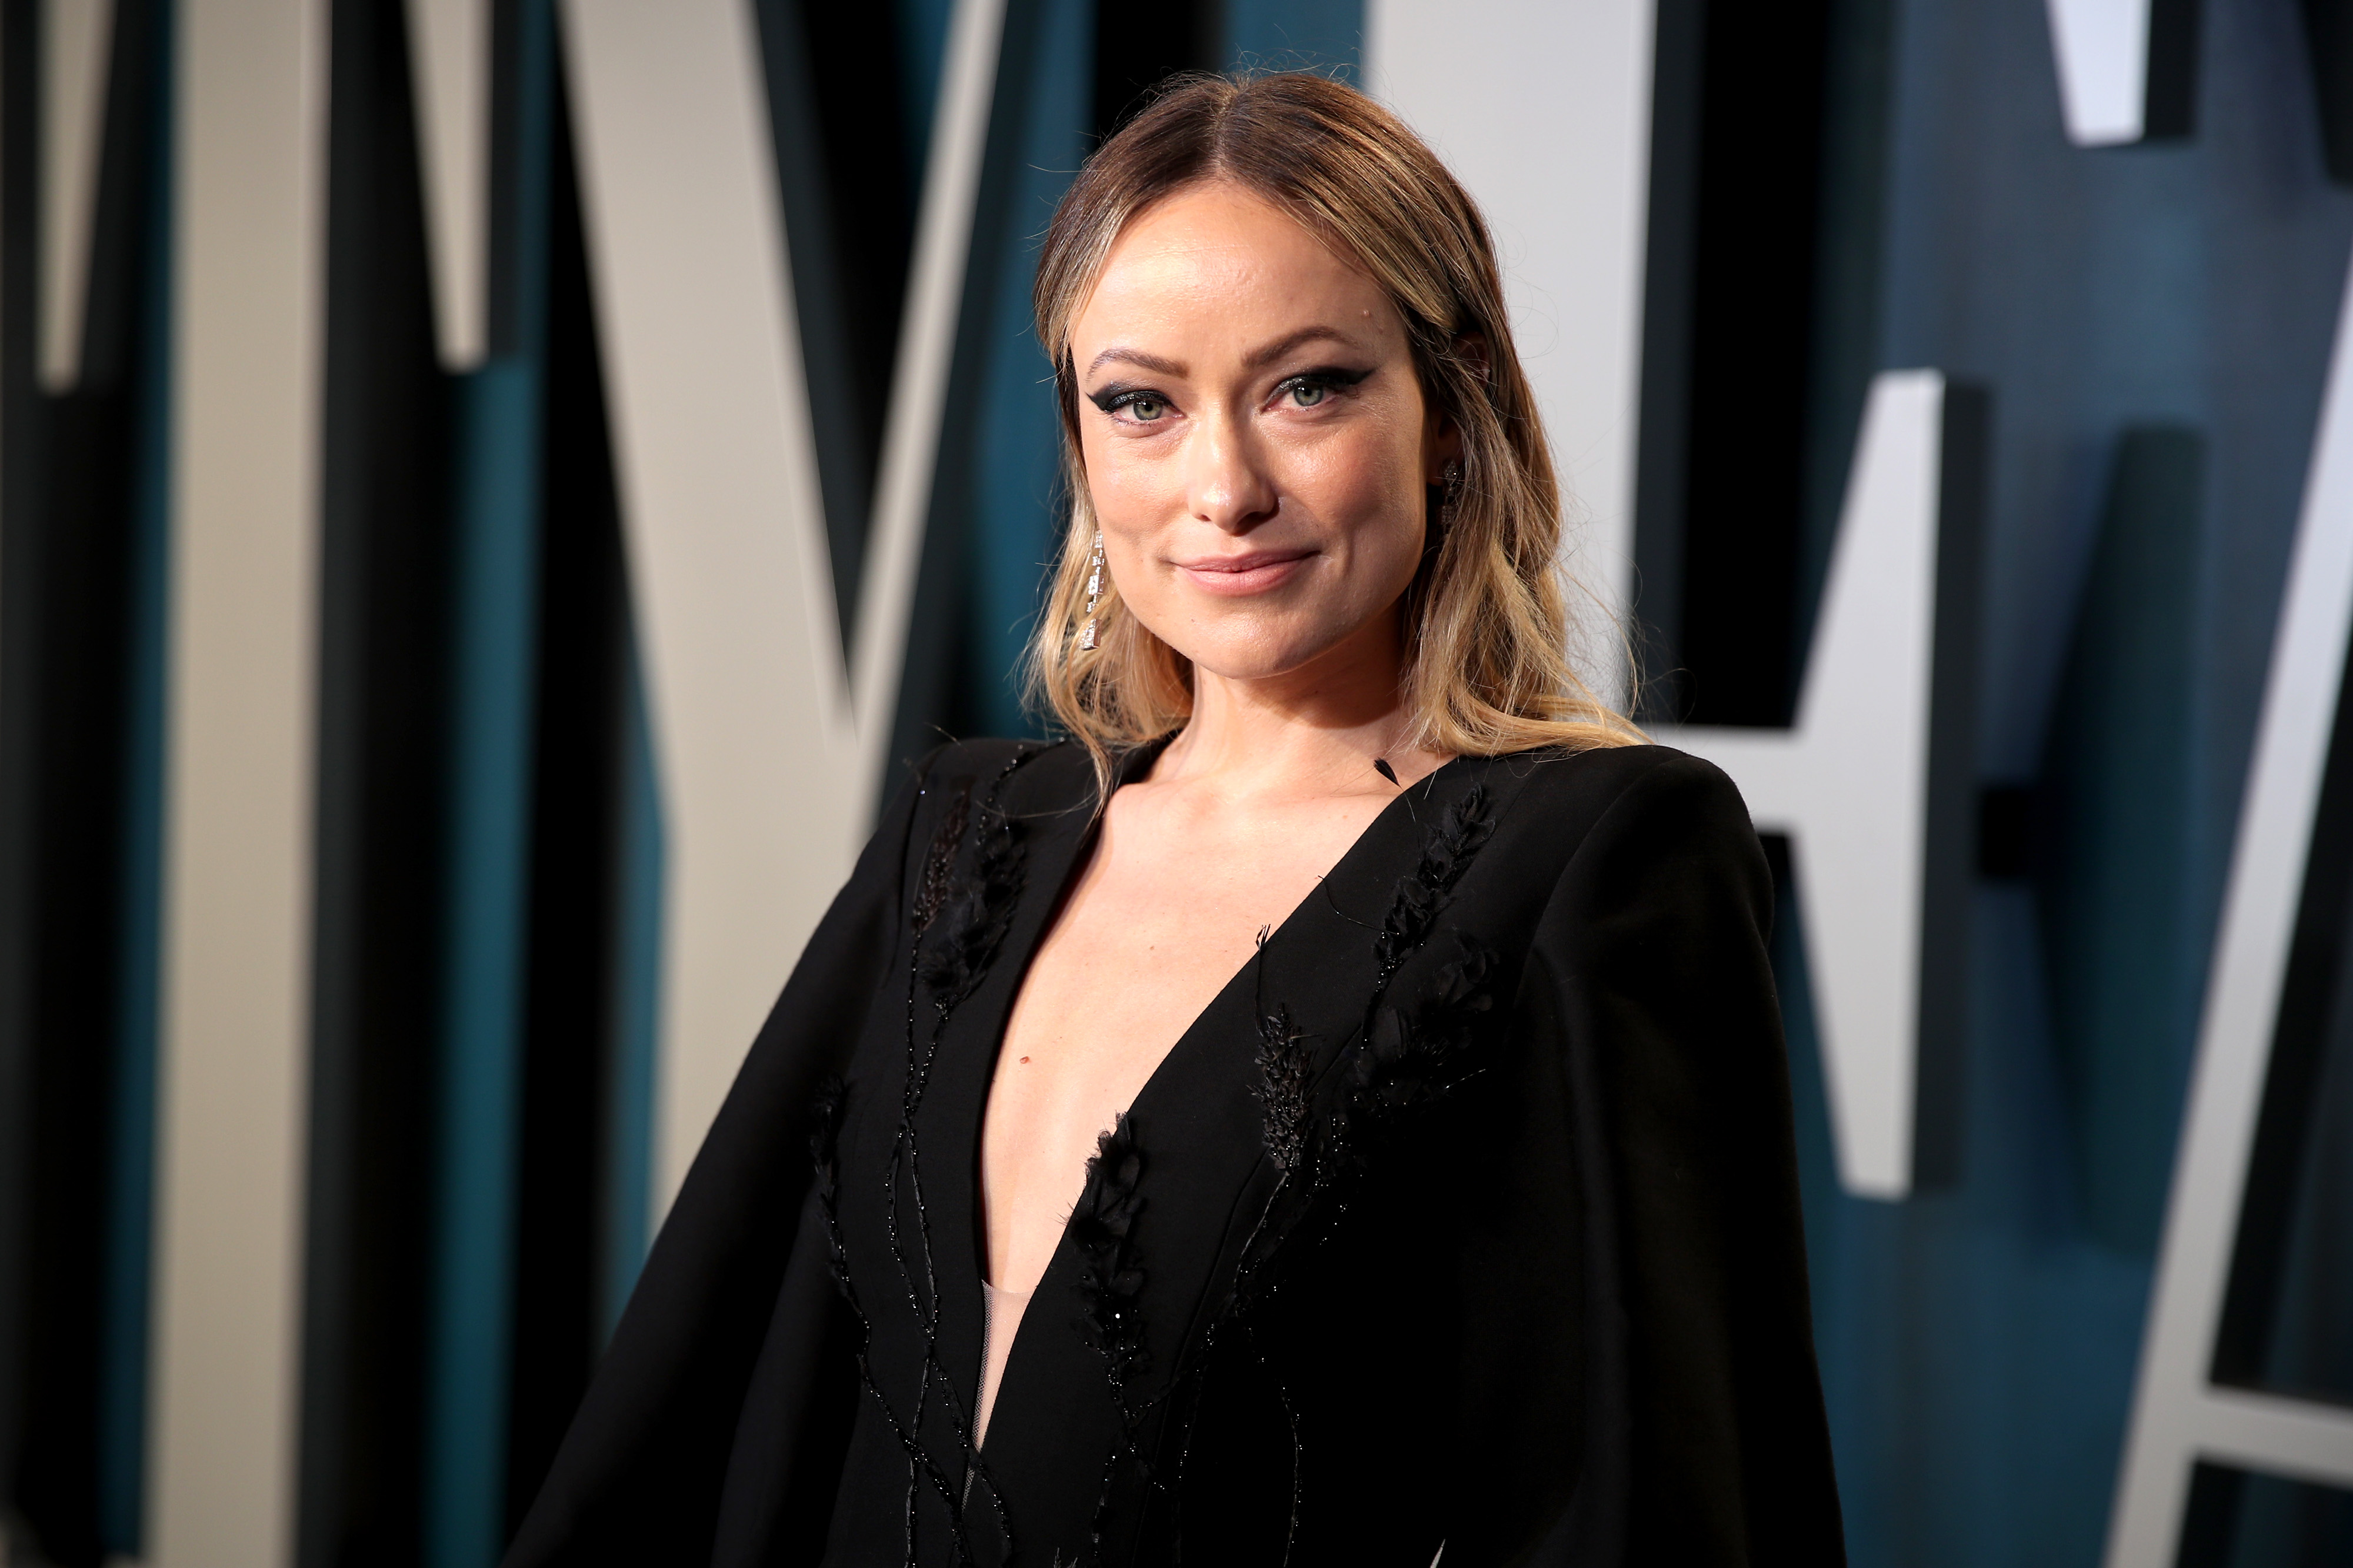 Olivia Wilde attends the 2020 Vanity Fair Oscar Party on February 09, 2020